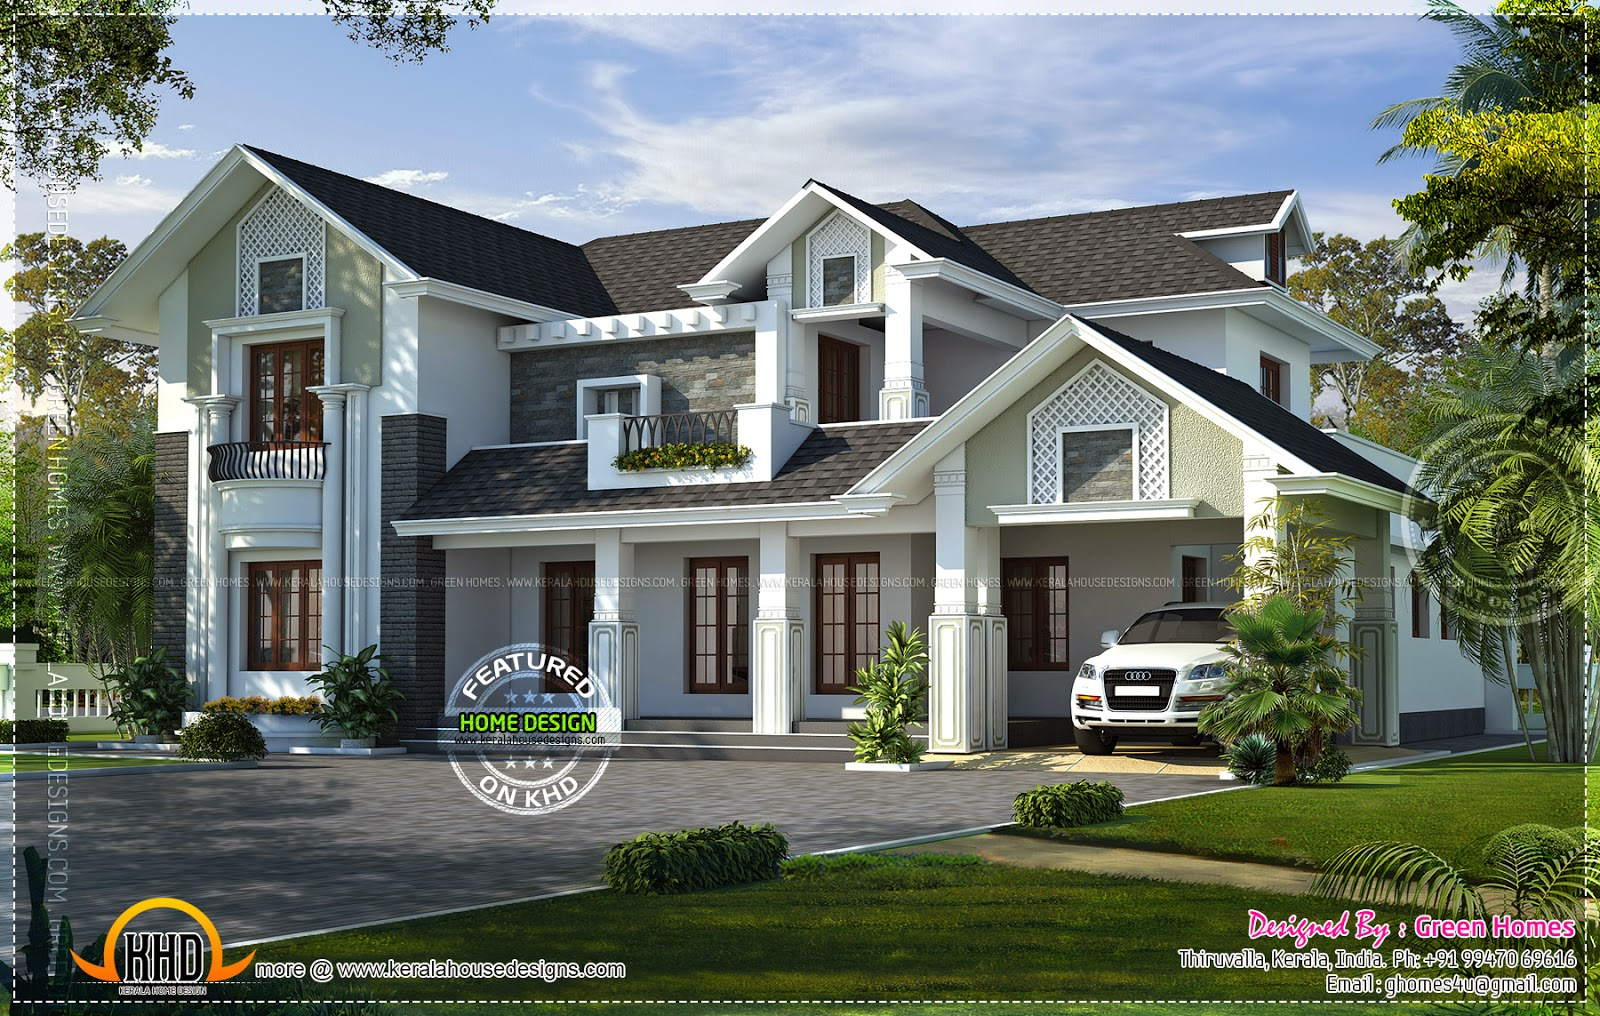 Western style house rendering - Kerala home design and floor plans